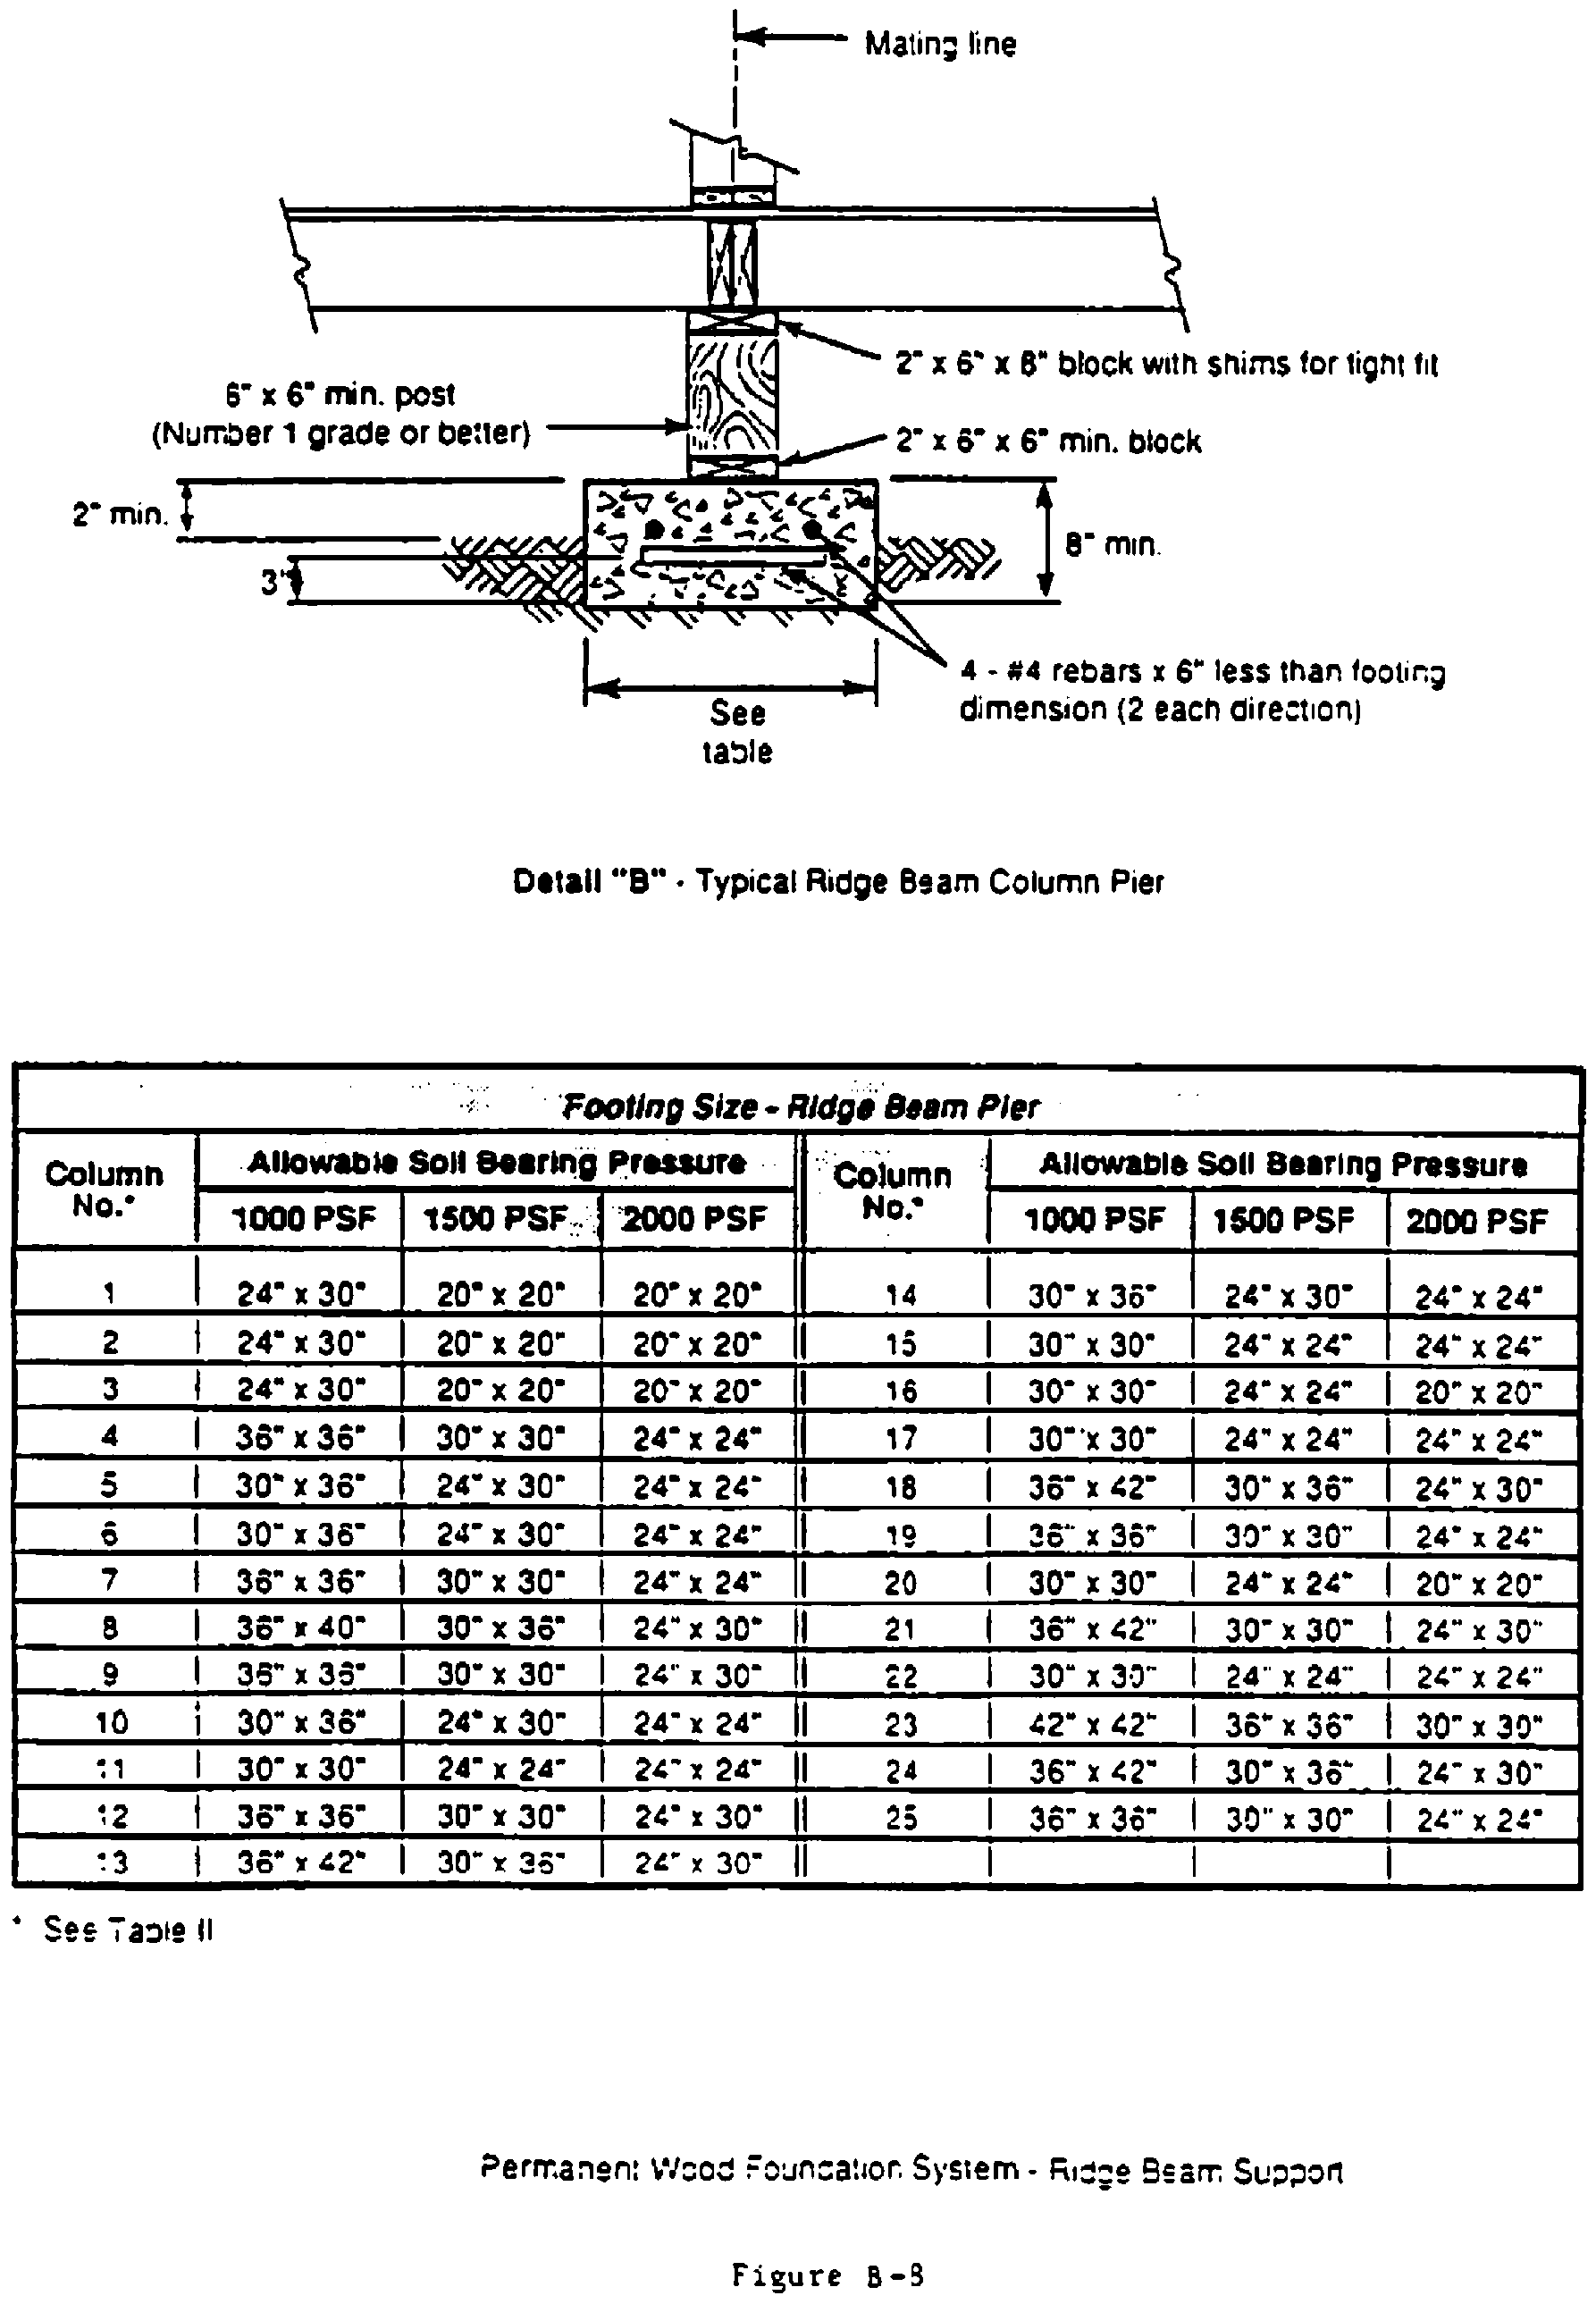 TYPICAL DESIGNS FOR LOAD-BEARING SUPPORTS FOR MANUFACTURED HOMES - Figure 6